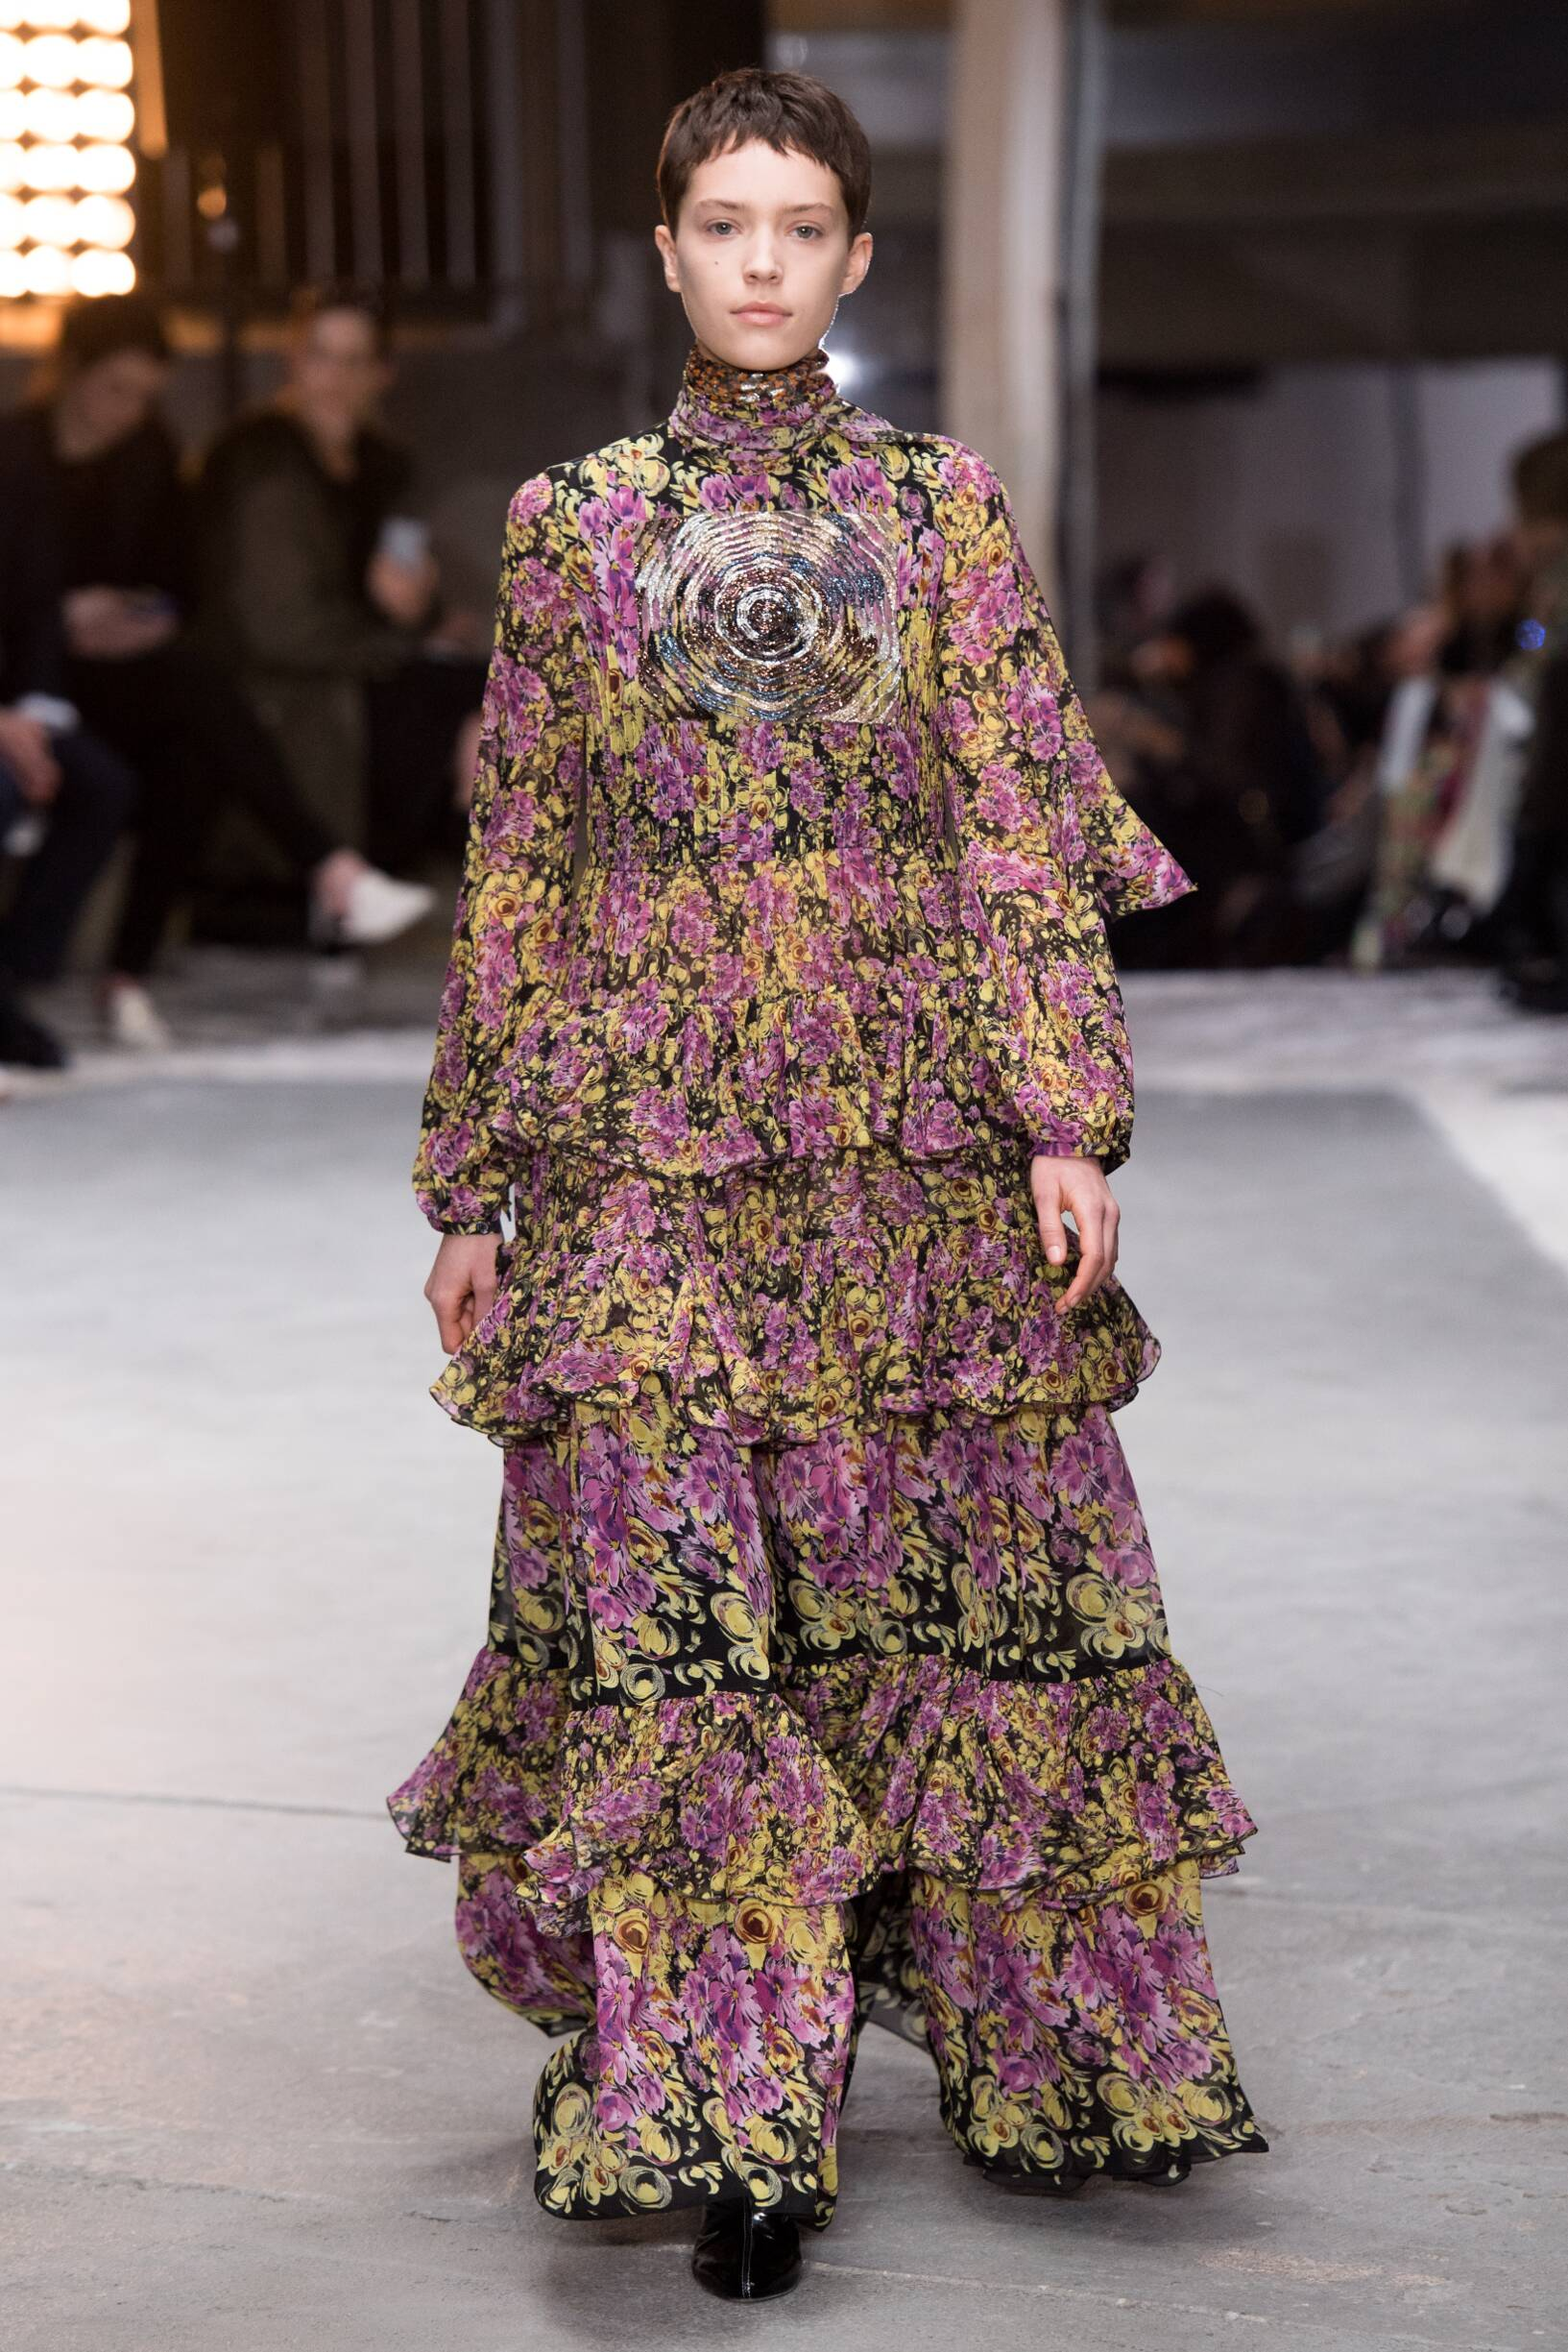 Fashion 2018-19 Woman Trends Giambattista Valli